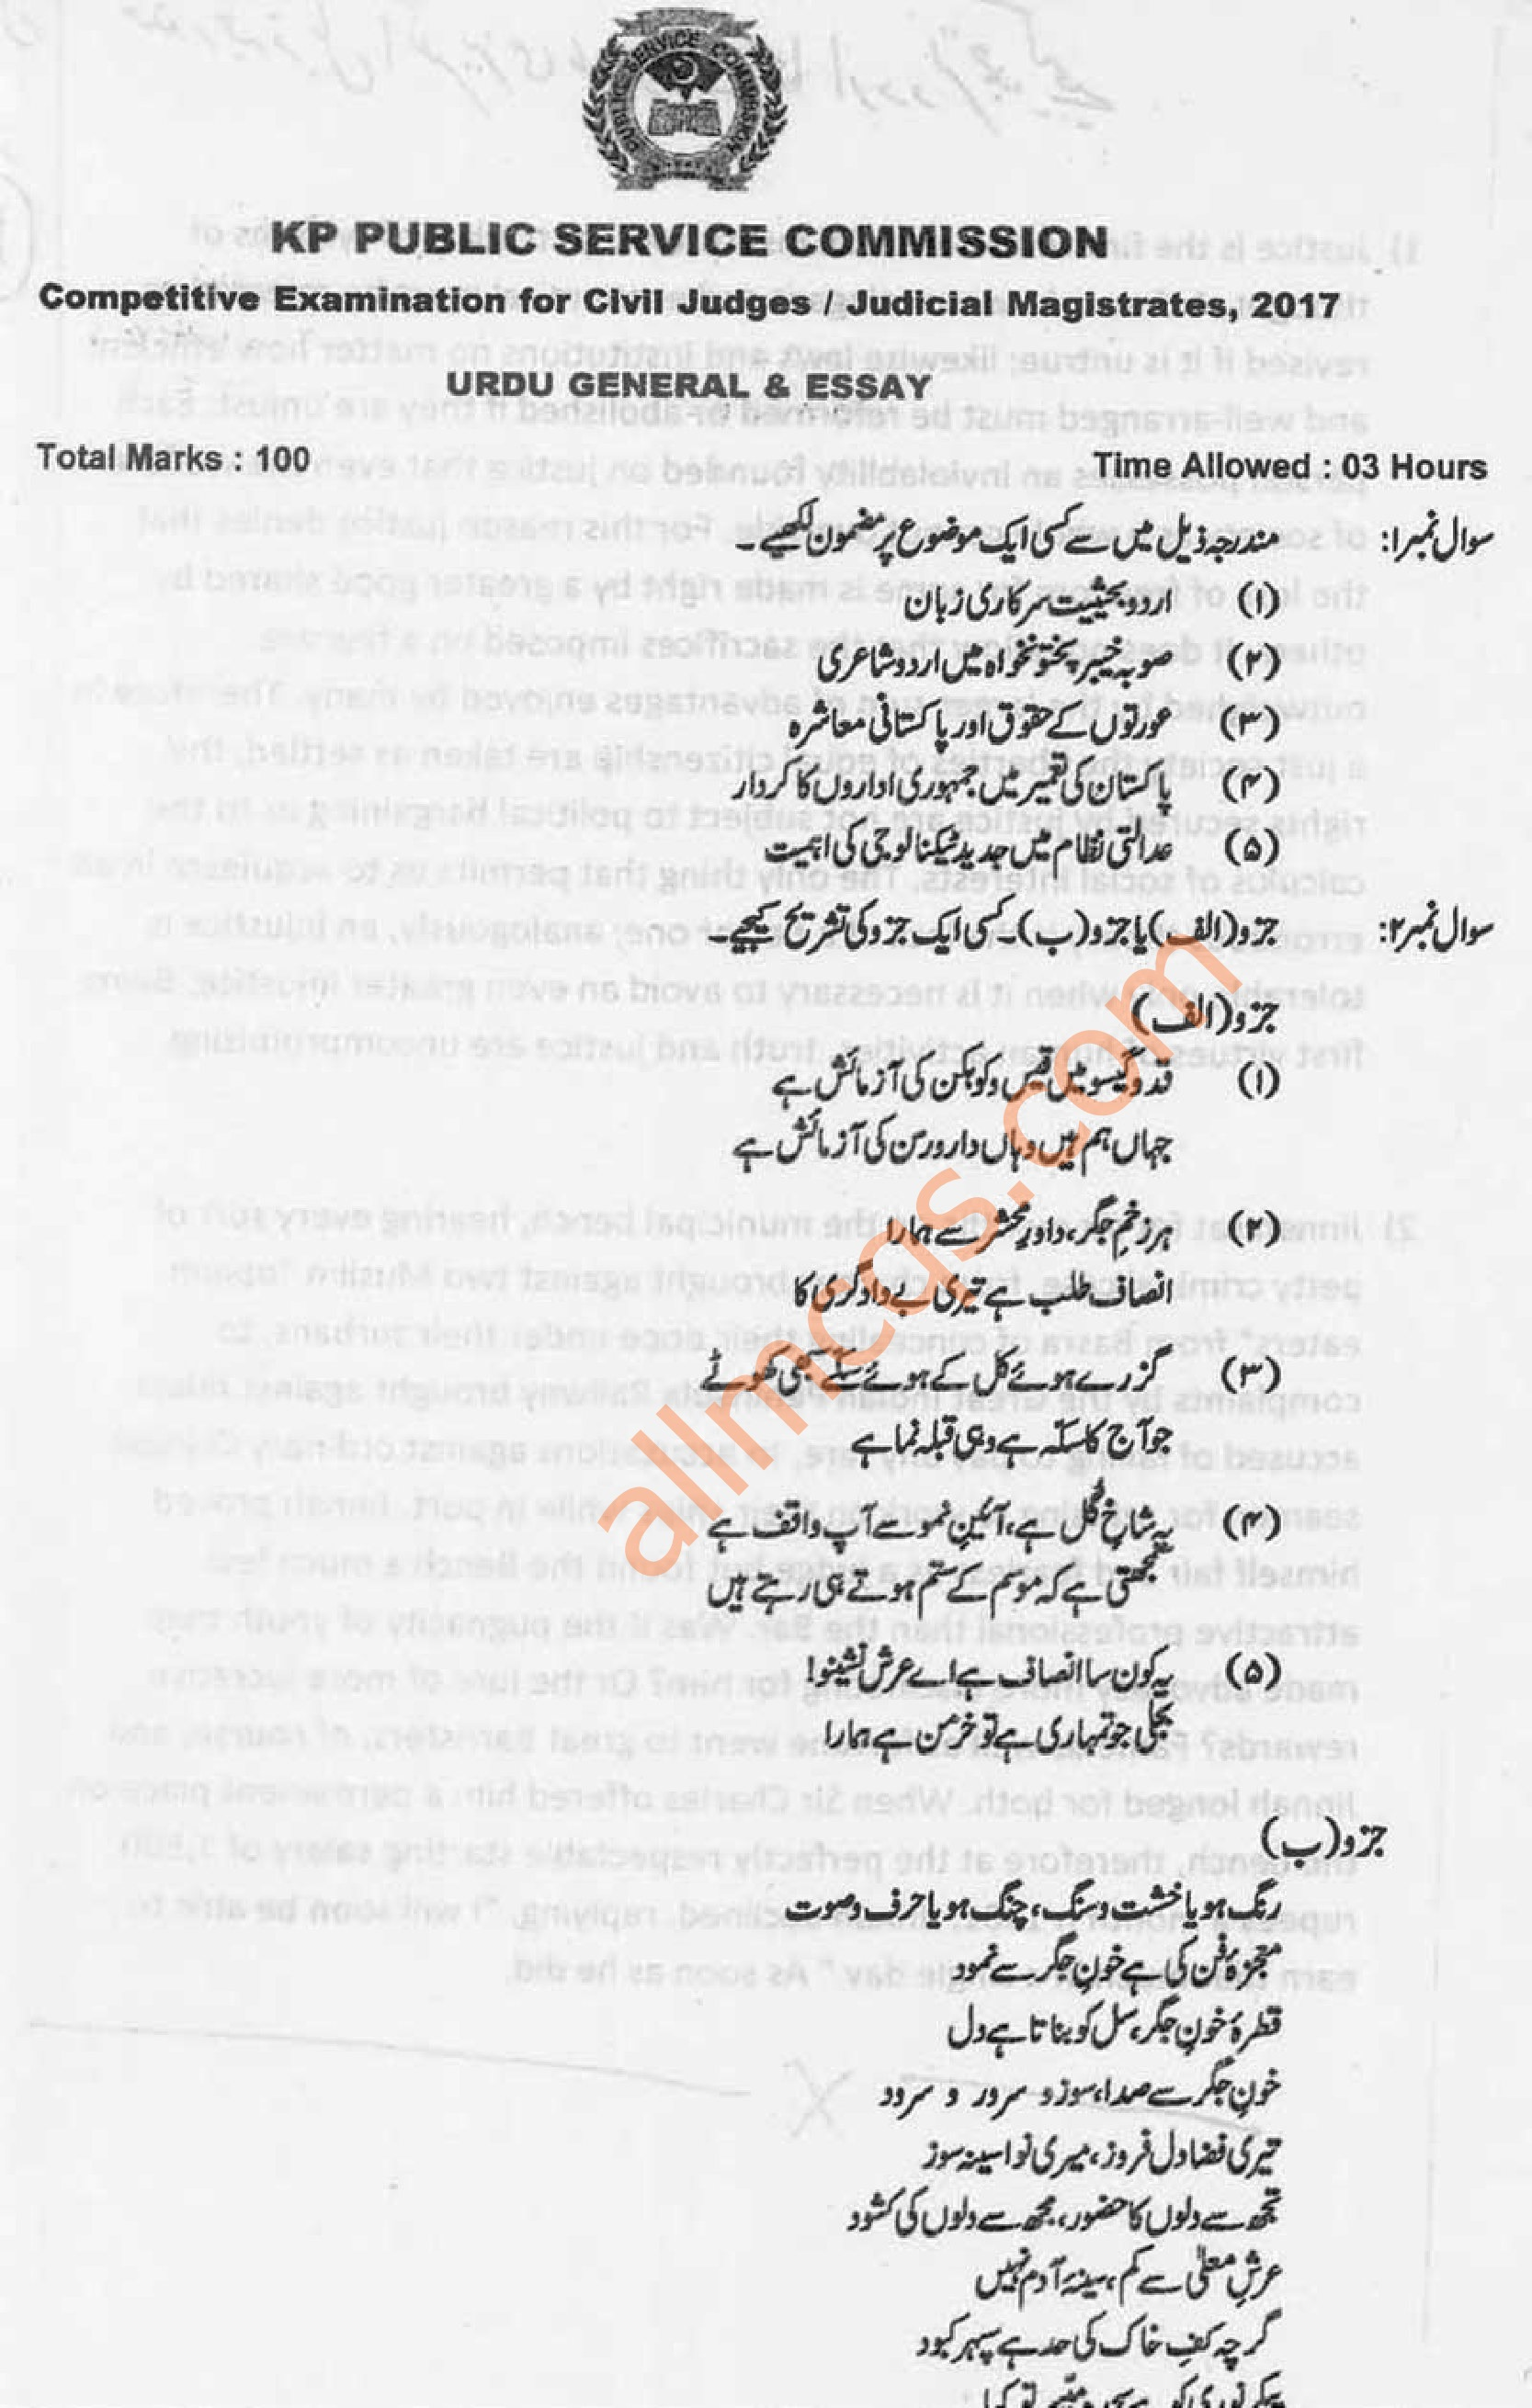 urdu essay and urdu general paper civil judges judicial magistrates  urdu essay and urdu general paper civil judges judicial magistrates kpk psc  public service commission